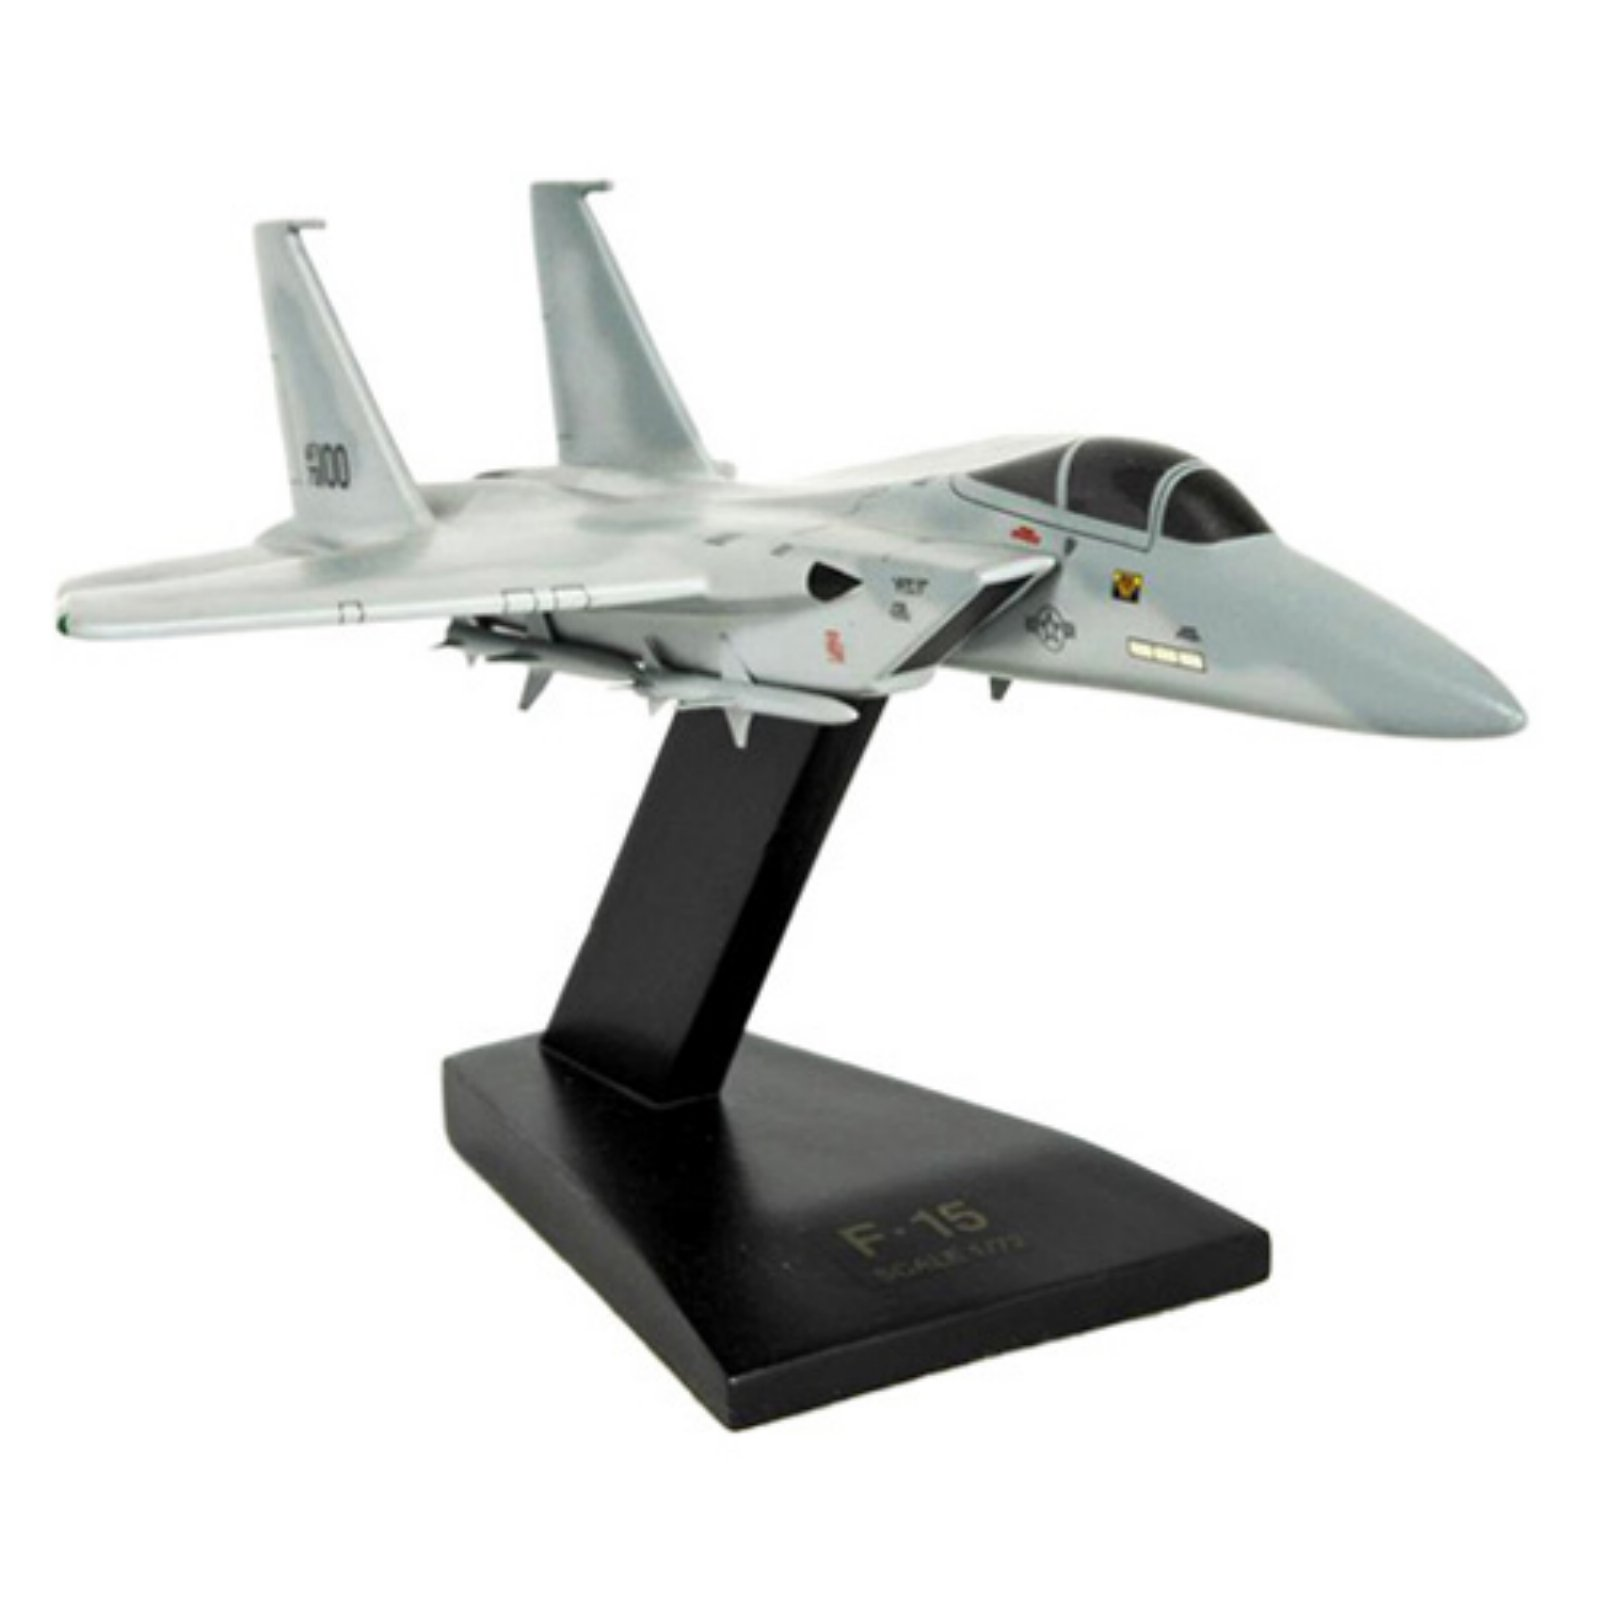 Daron Worldwide F-15C Eagle Model Airplane by Toys and Models Corporation